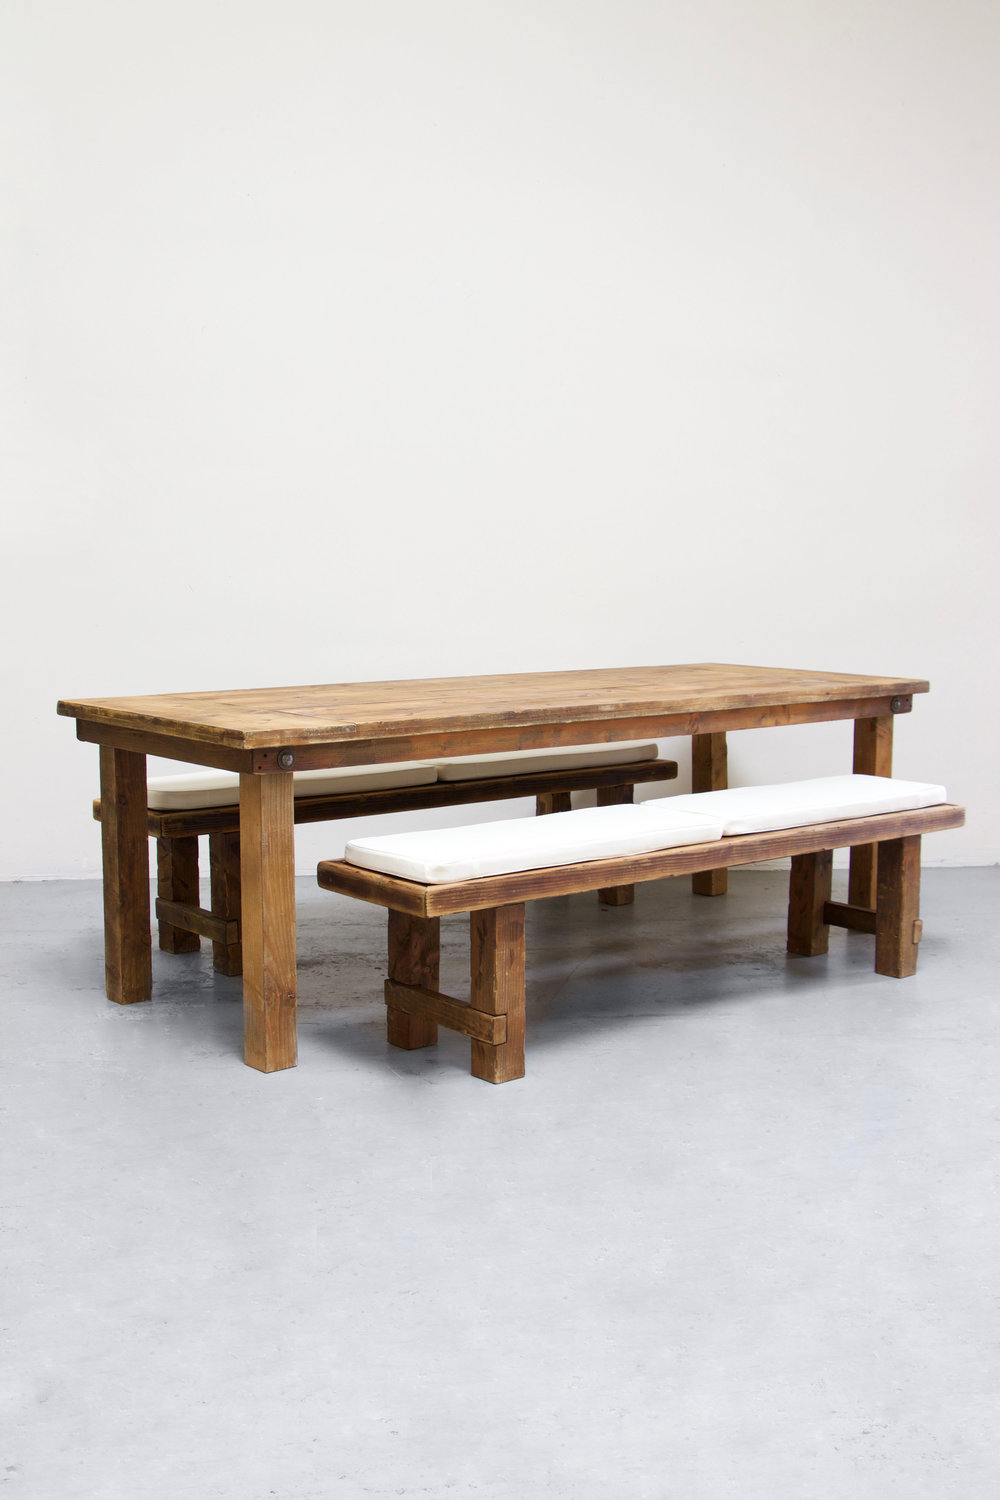 1 Honey Brown Farm Table w/ 2 Long Benches $145